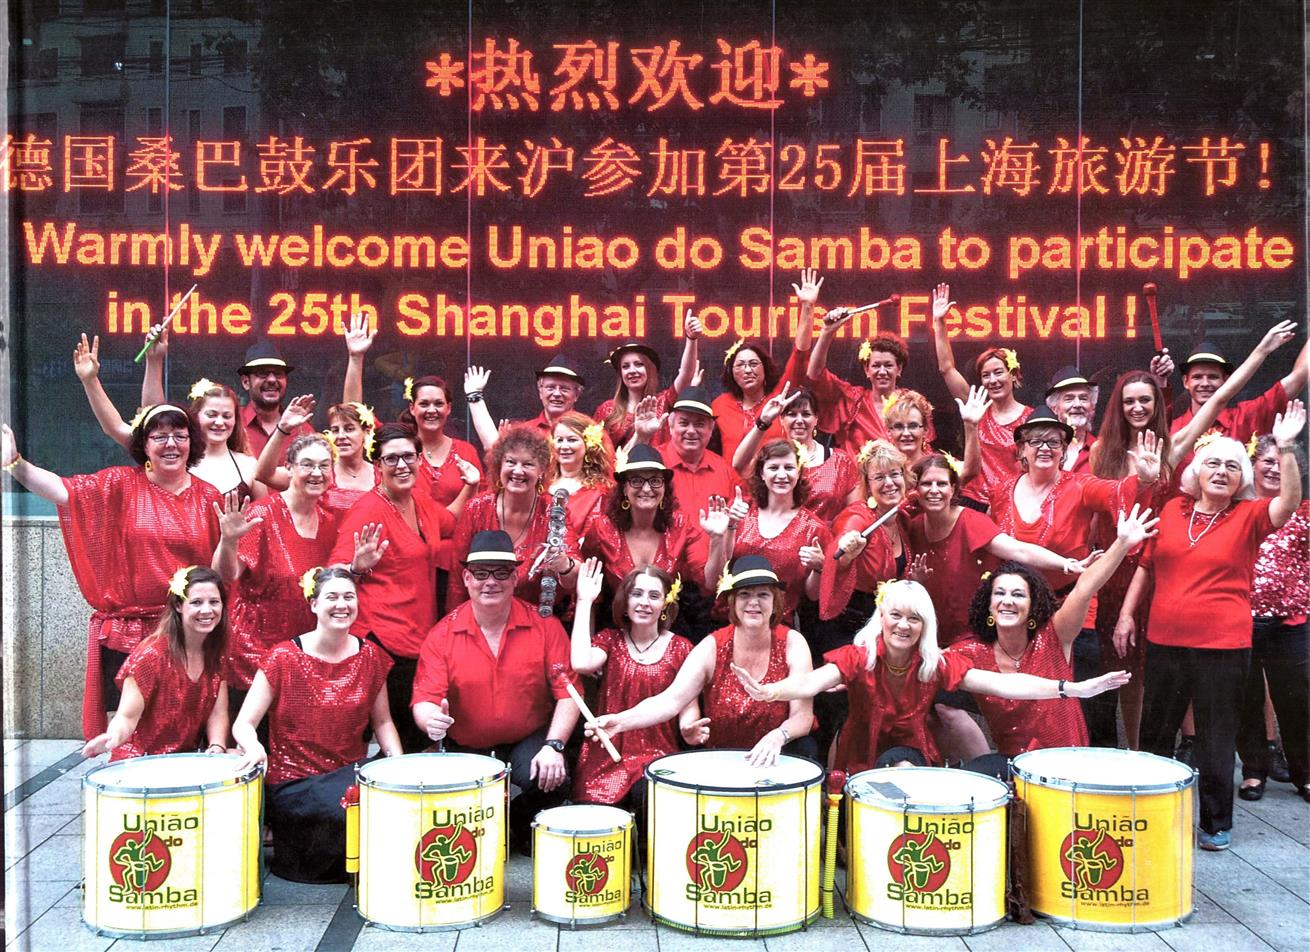 Uniao do Samba beim internationalen Tourismusfestival Shanghai 2014